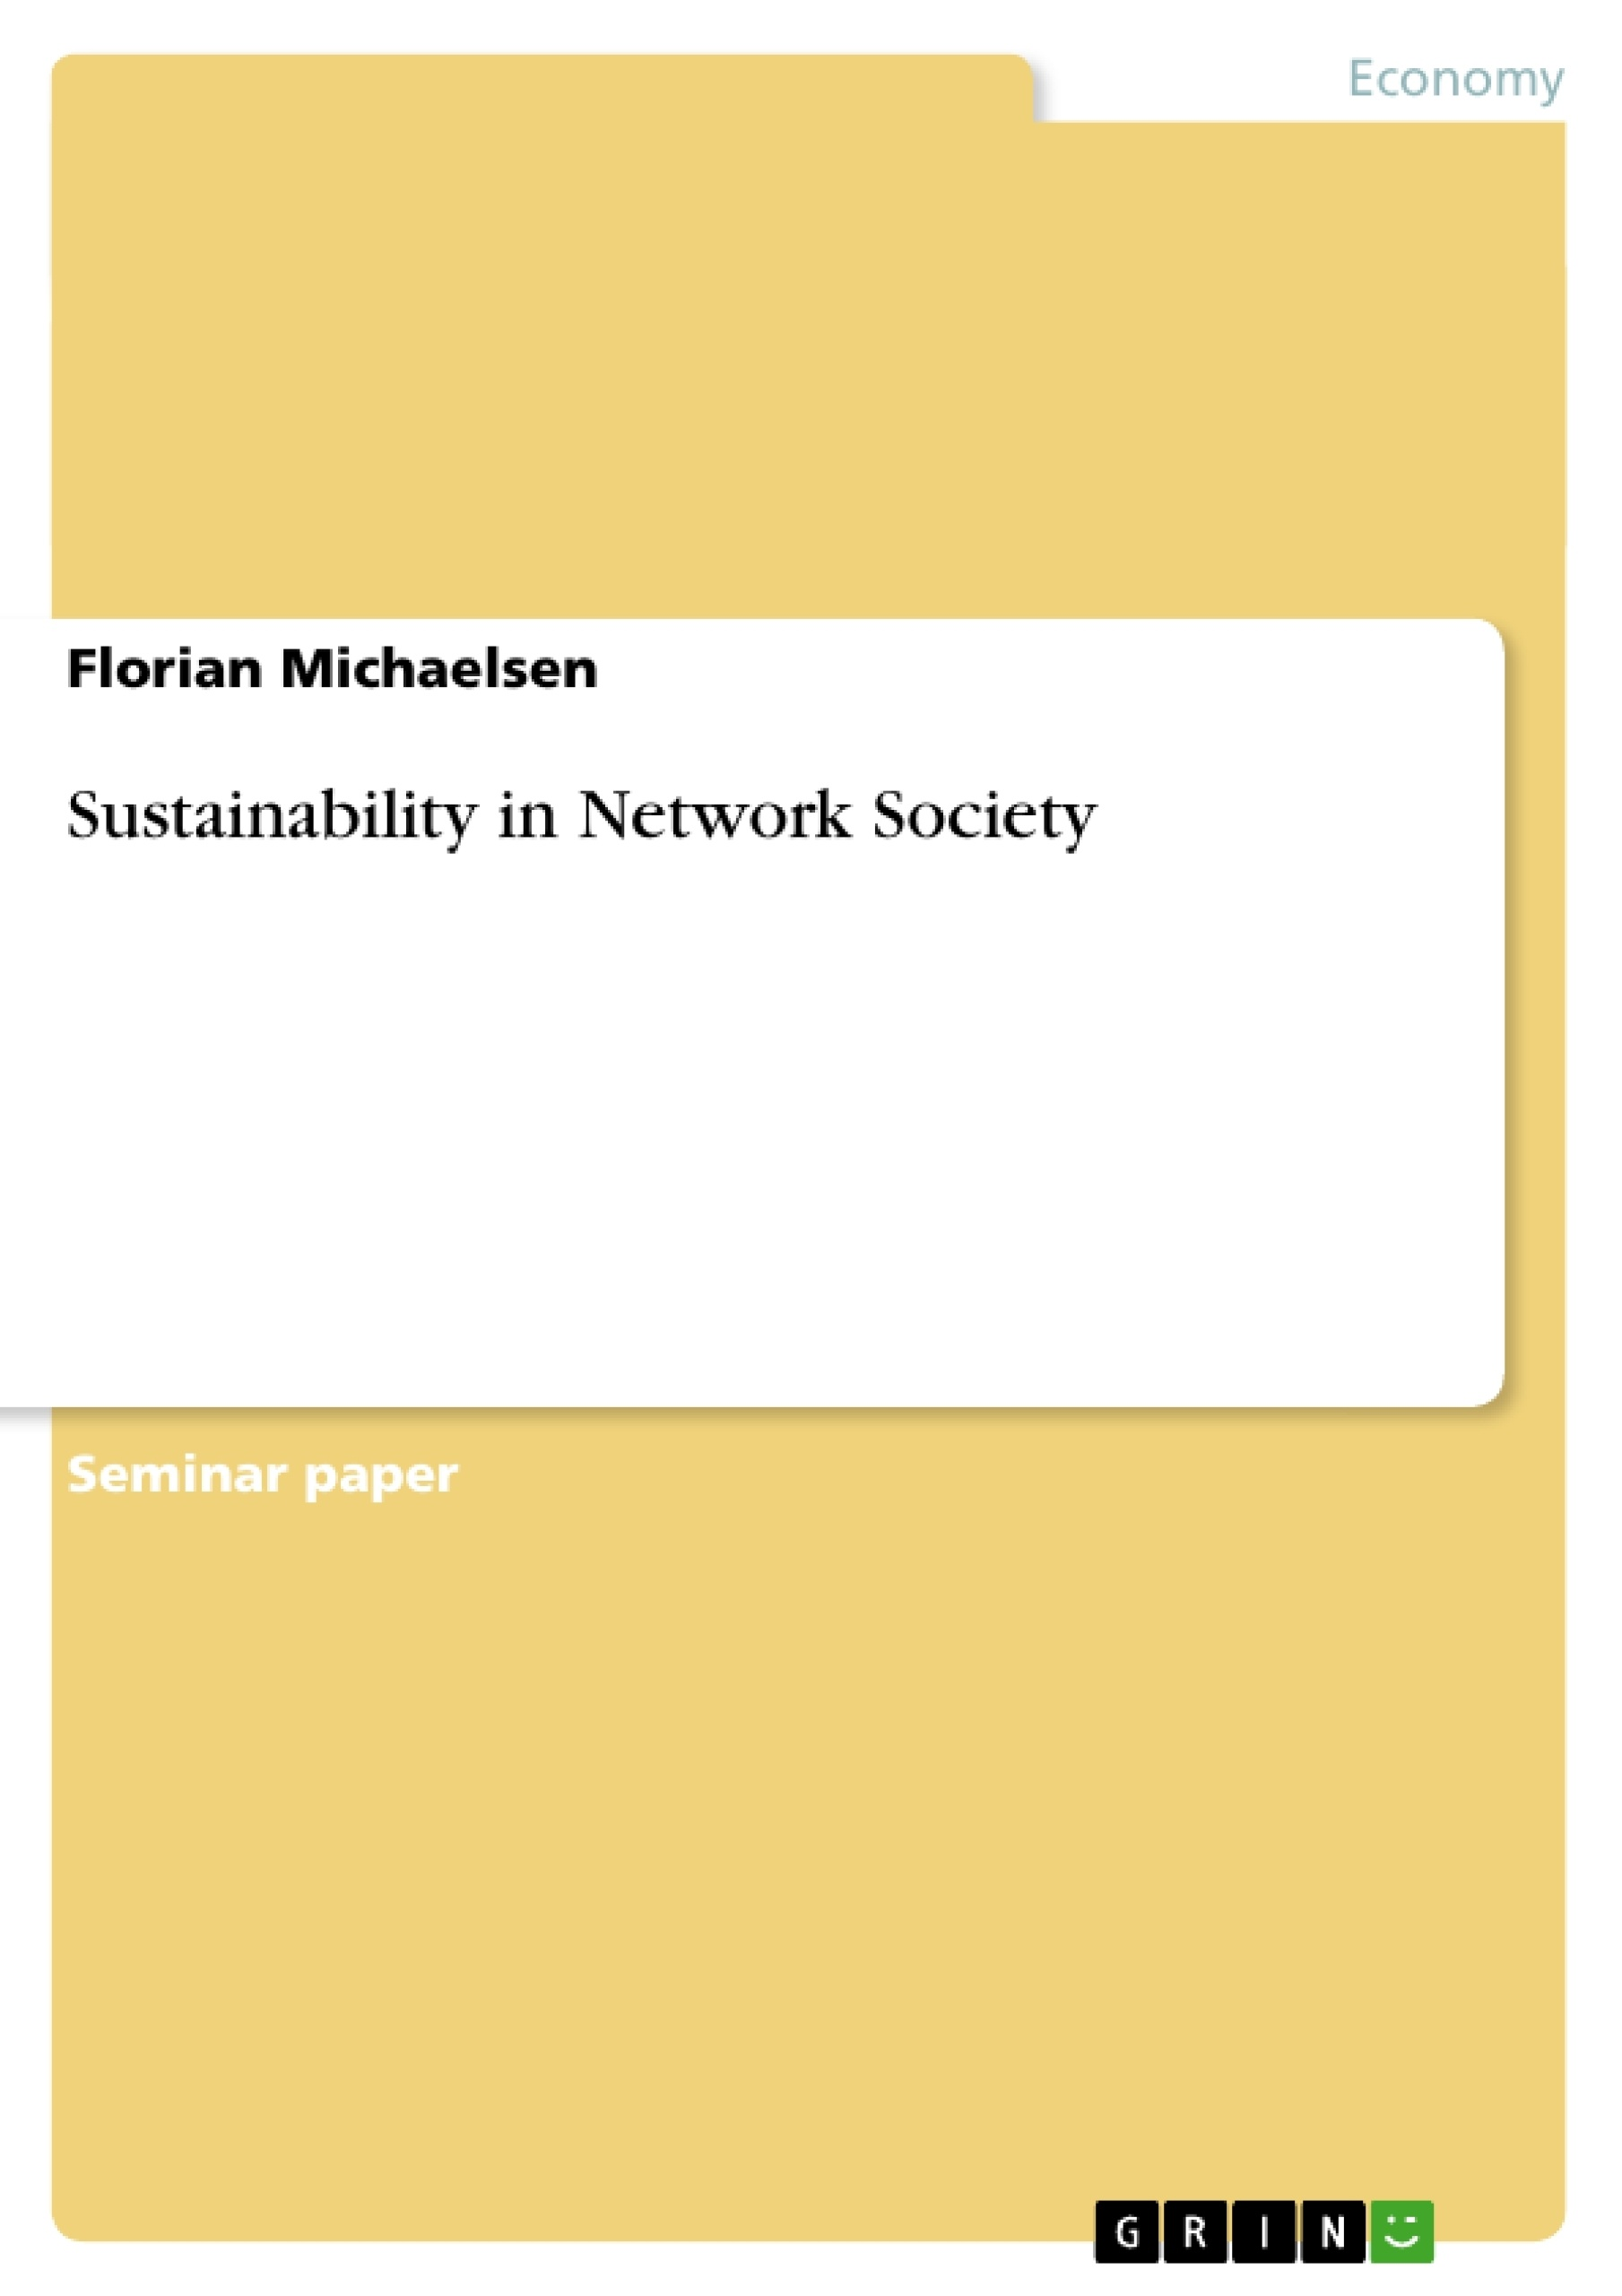 Title: Sustainability in Network Society